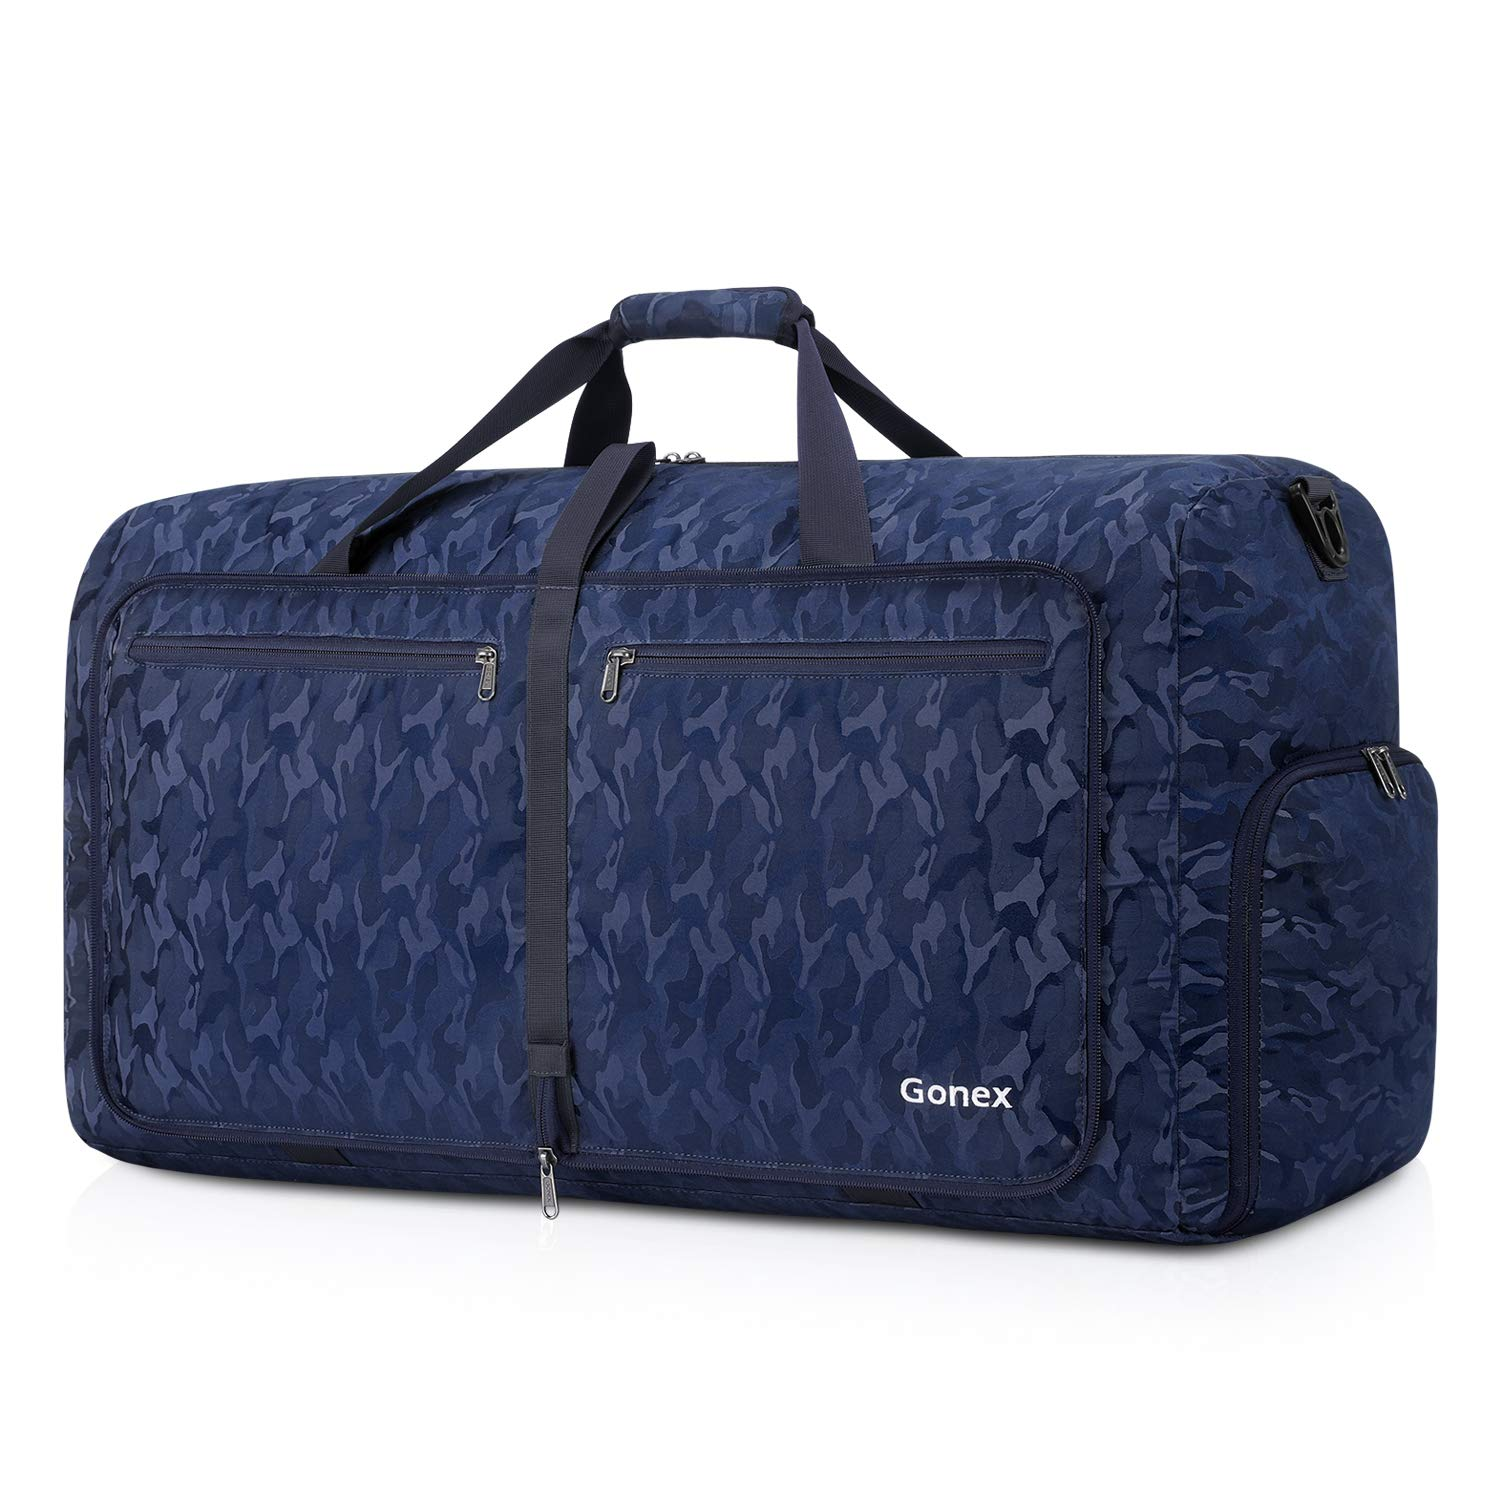 Gonex 80L Packable Travel Duffle Bag Foldable Cordura Duffel Bags for Luggage Gym Sports Camping Travelling Cycling Storage Shopping Water & Tear Resistant Black and Blue Camouflage by Gonex